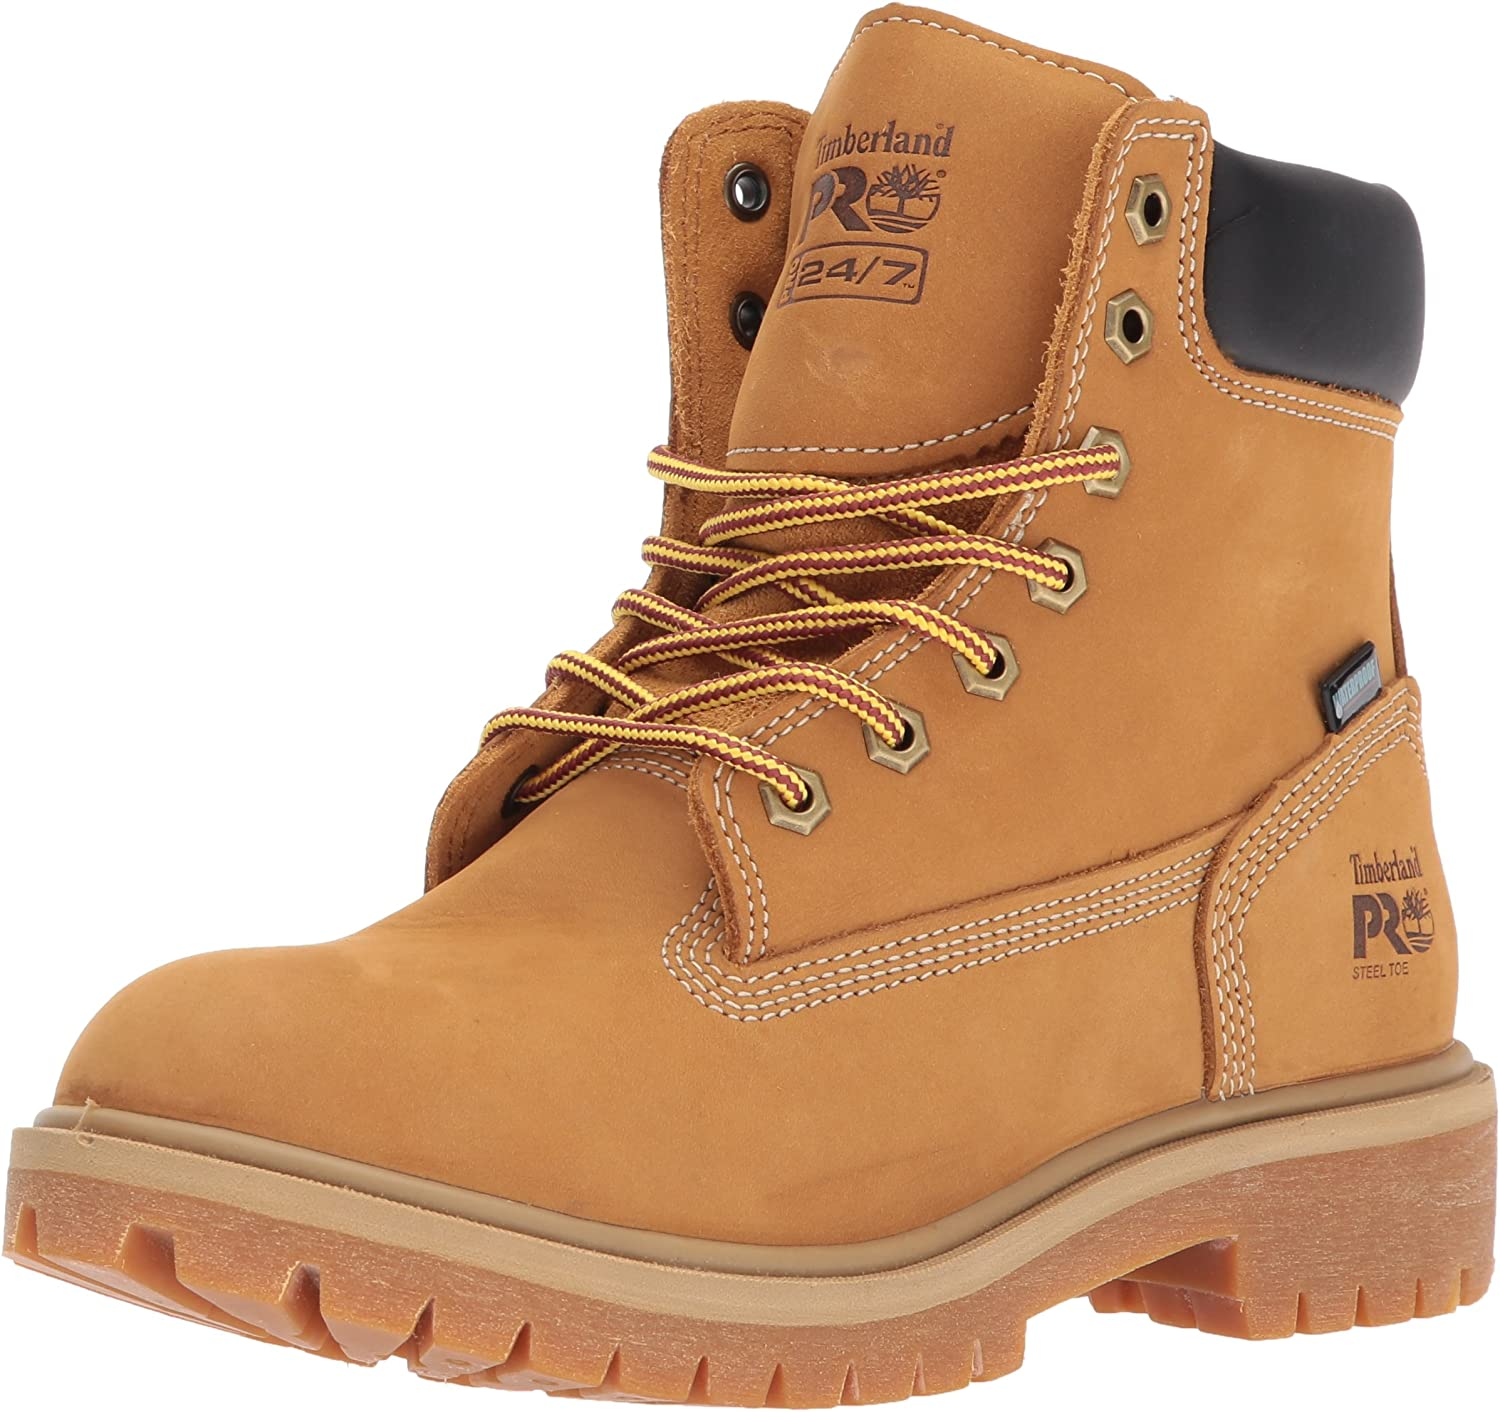 "Timberland PRO Women's Direct Attach 6"" Steel-Toe Waterproof Insulated Work Shoe: Shoes"